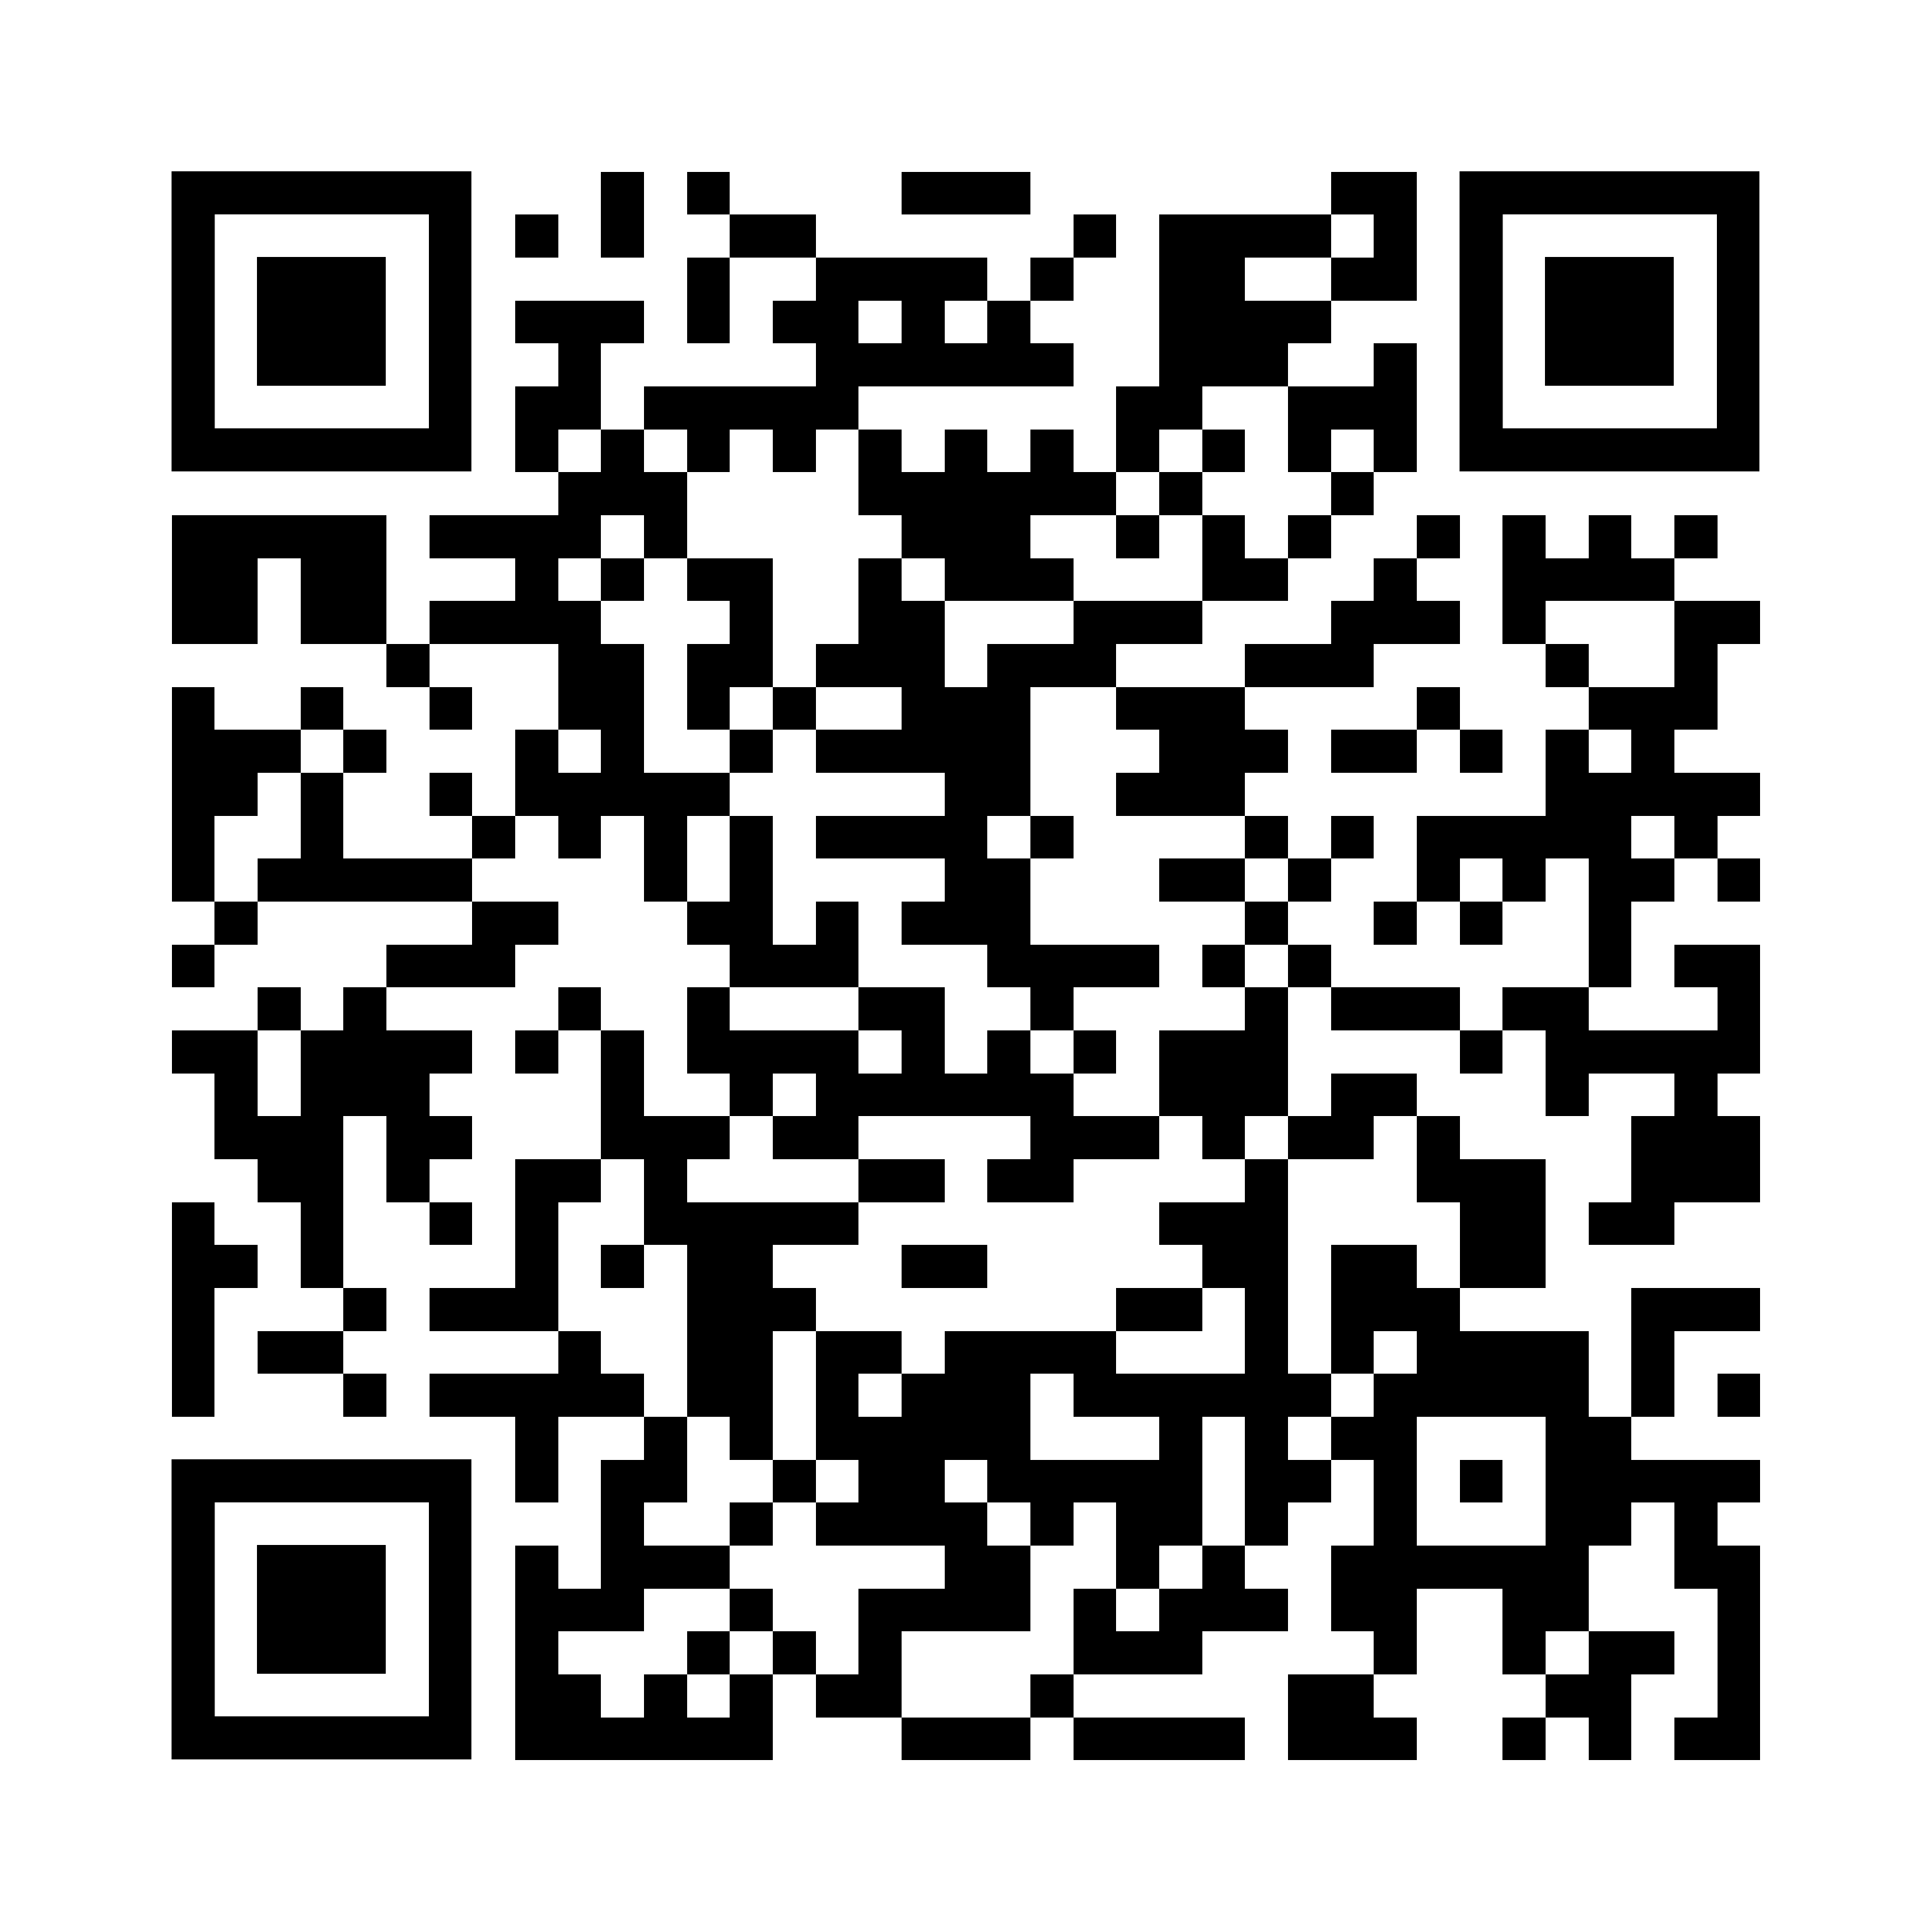 QR Code of VEscudero's Bitcoin address